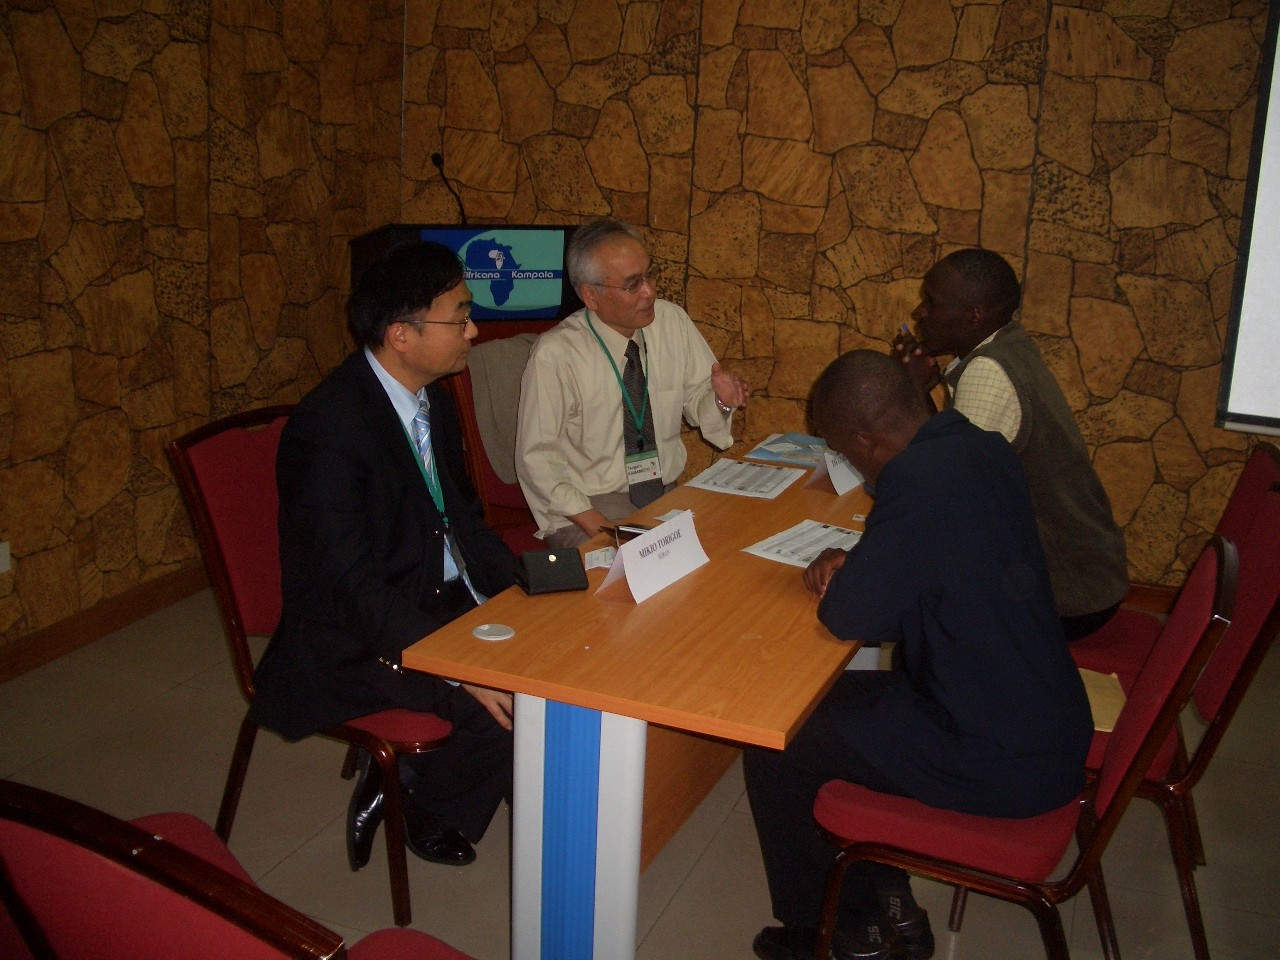 2008.09 Visit to Uganda, National business promotion tour, providing advice on technology export